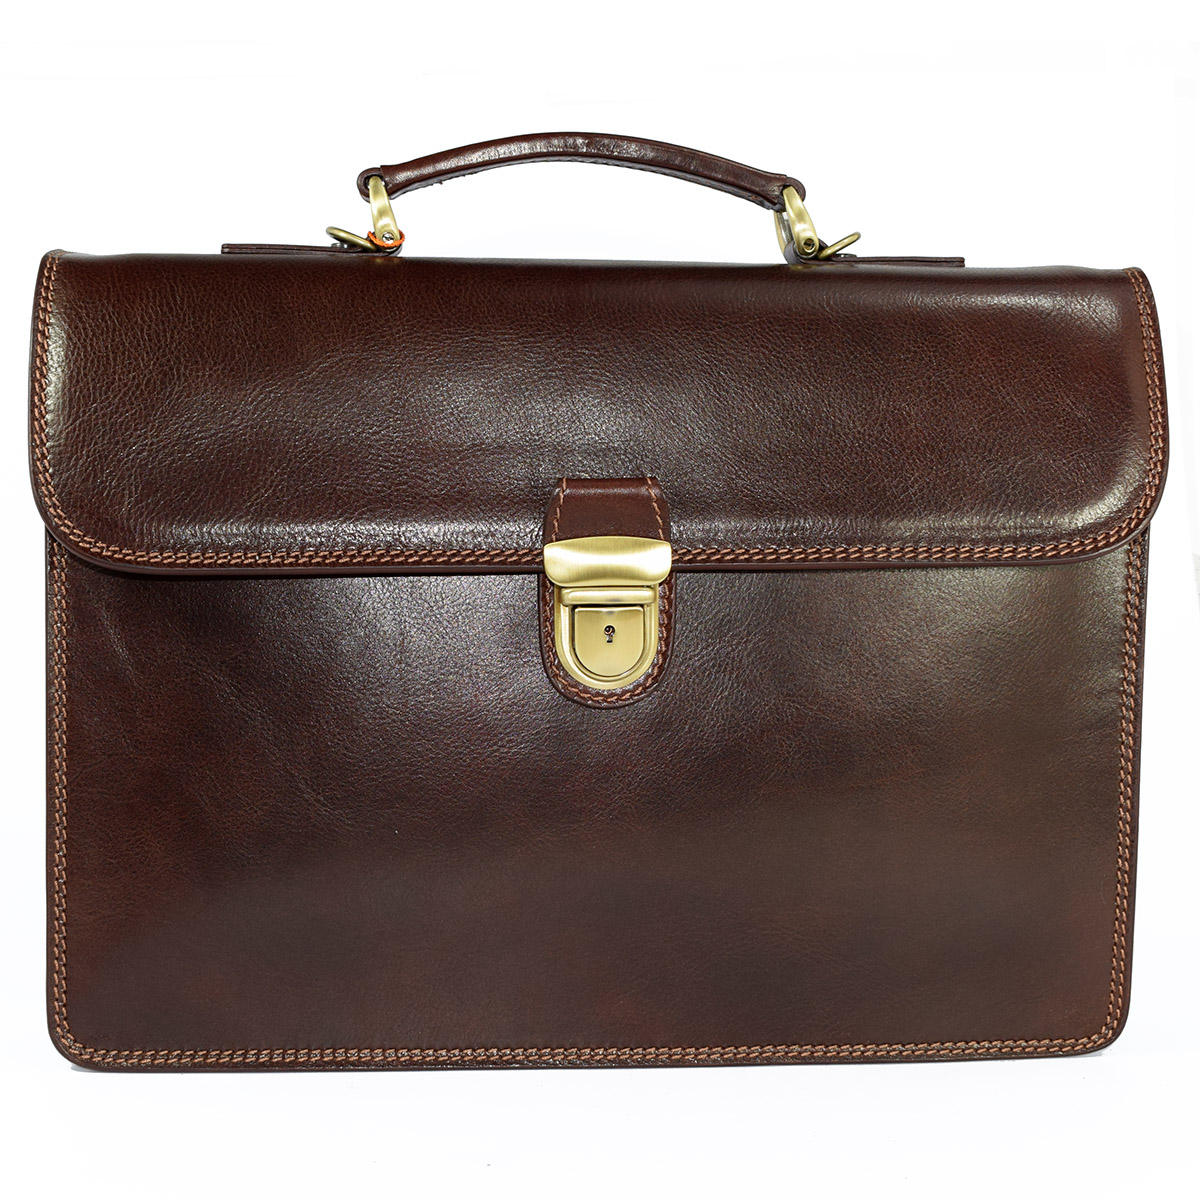 64035 Single Section Briefcase by Bottega Fiorentina